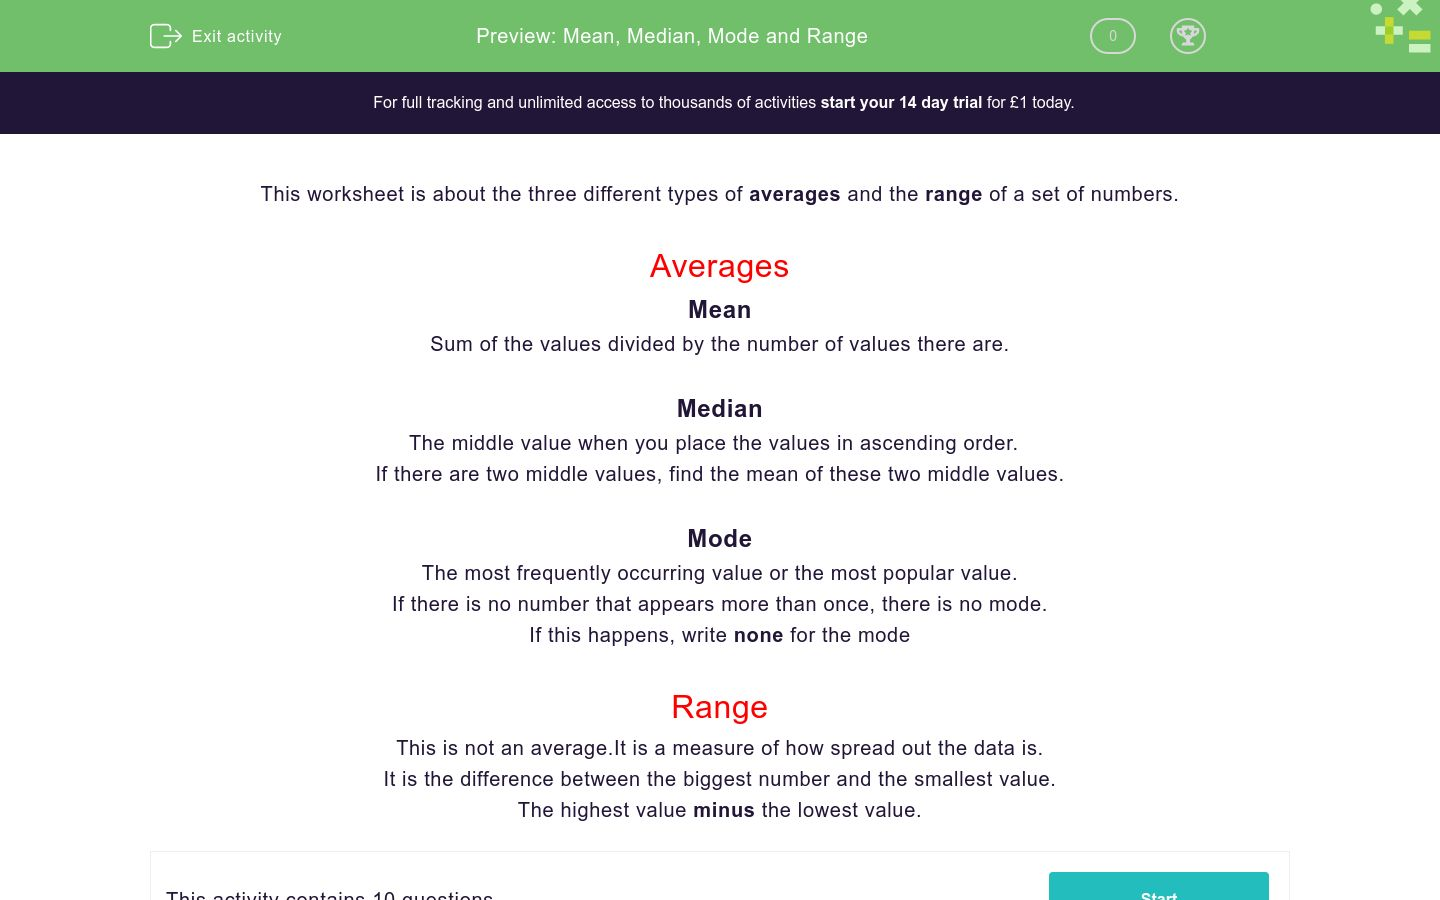 'Mean, Median, Mode and Range' worksheet